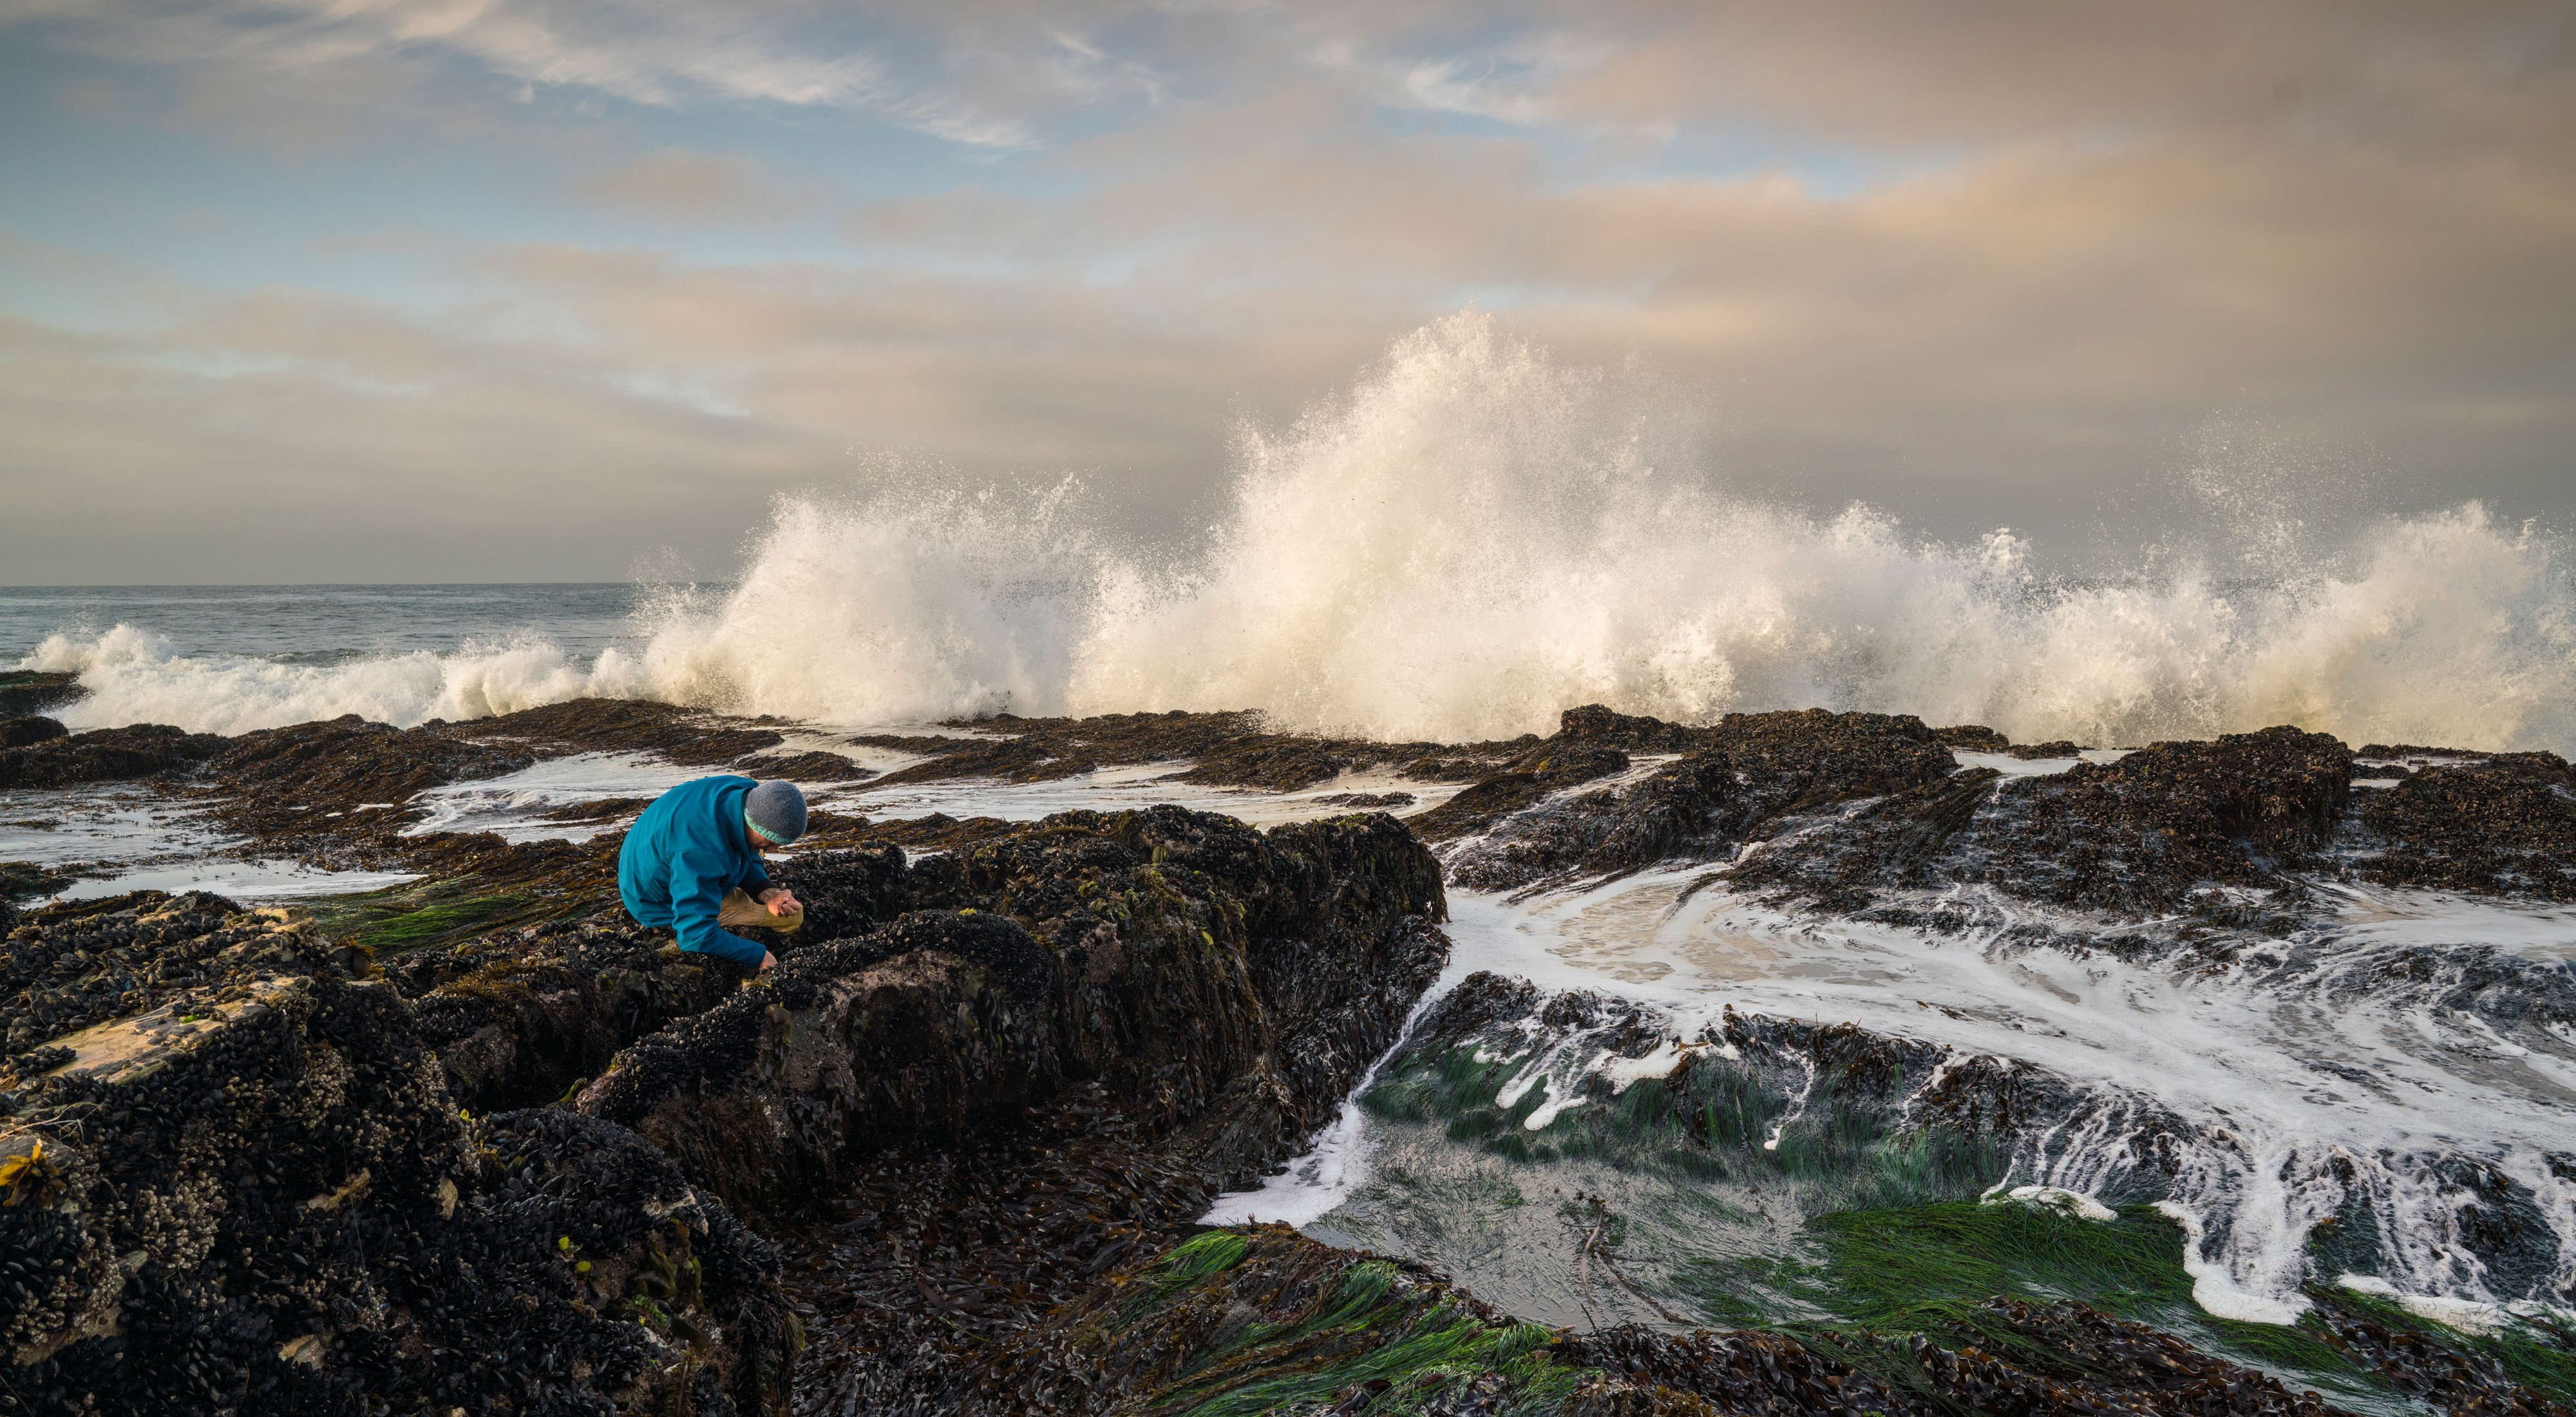 Waves crash nearby as a man explores a rock near shore